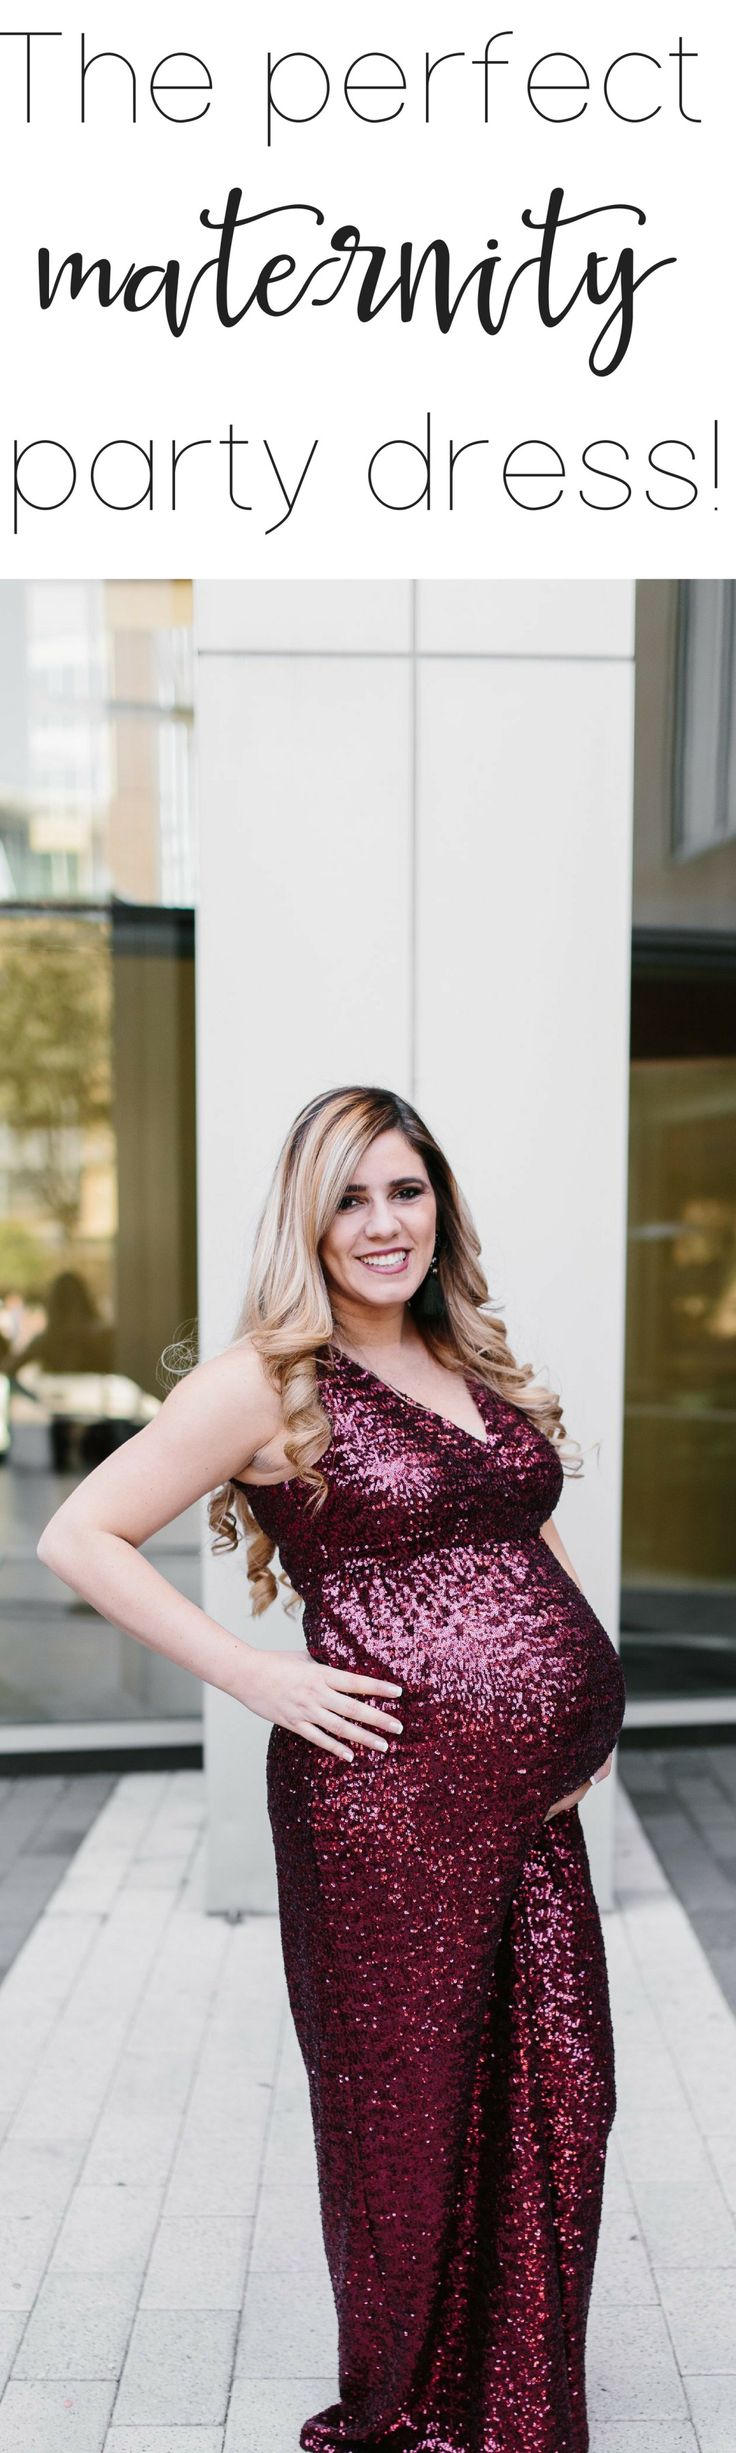 The PERFECT maternity party dress! – The Ashmores Blog